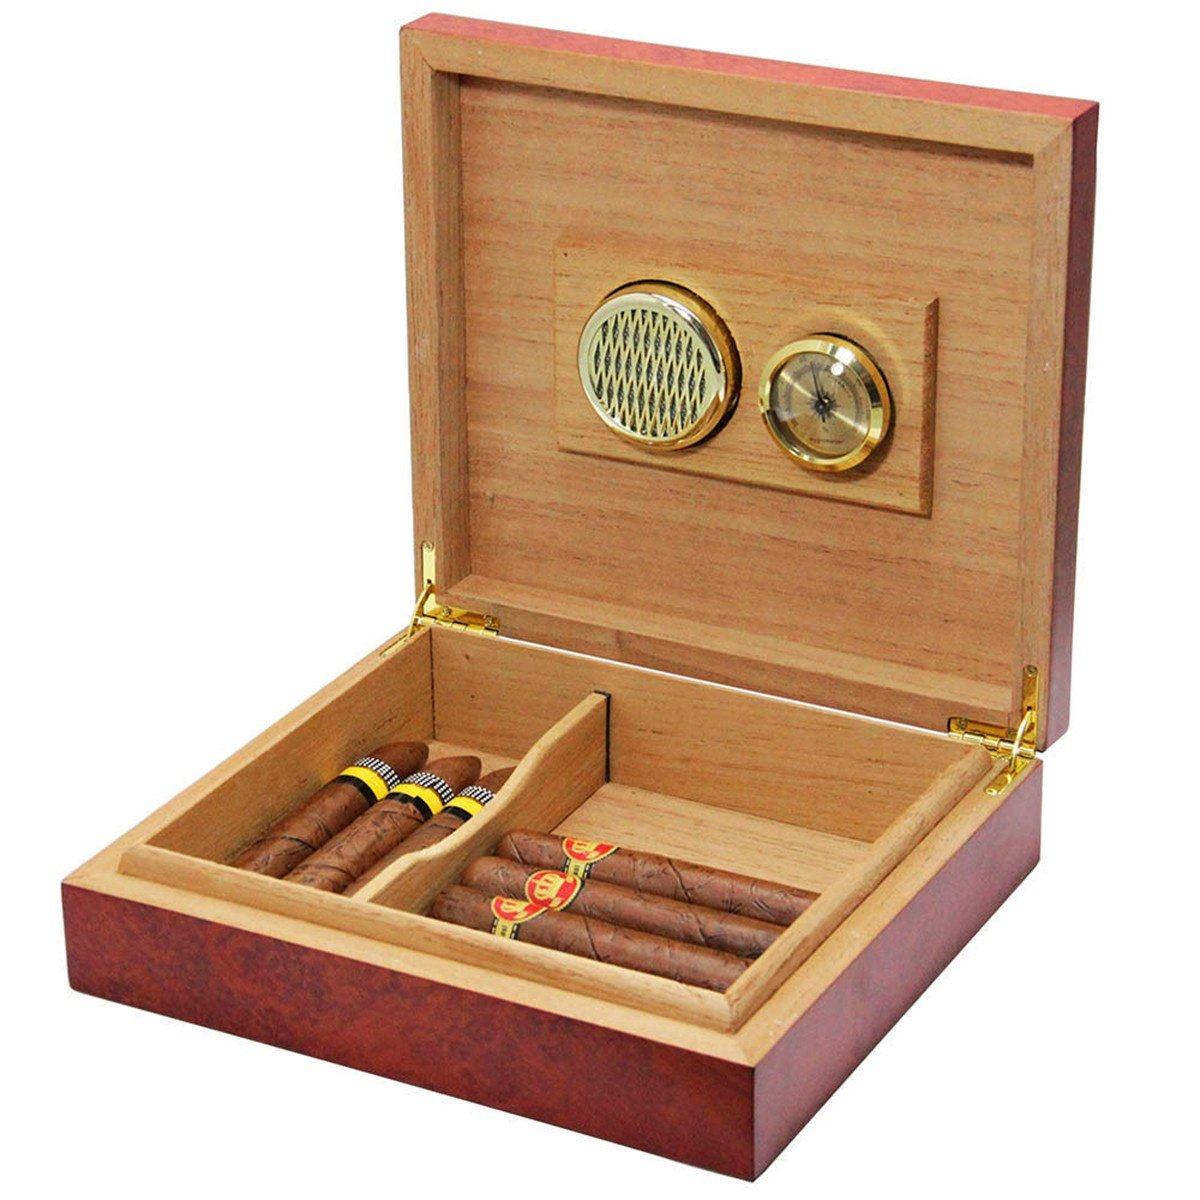 HOT SALE Cedar Wood Lined Humidor Humidifier Case Box With Hygrometer(Size: 240x215x65mm)